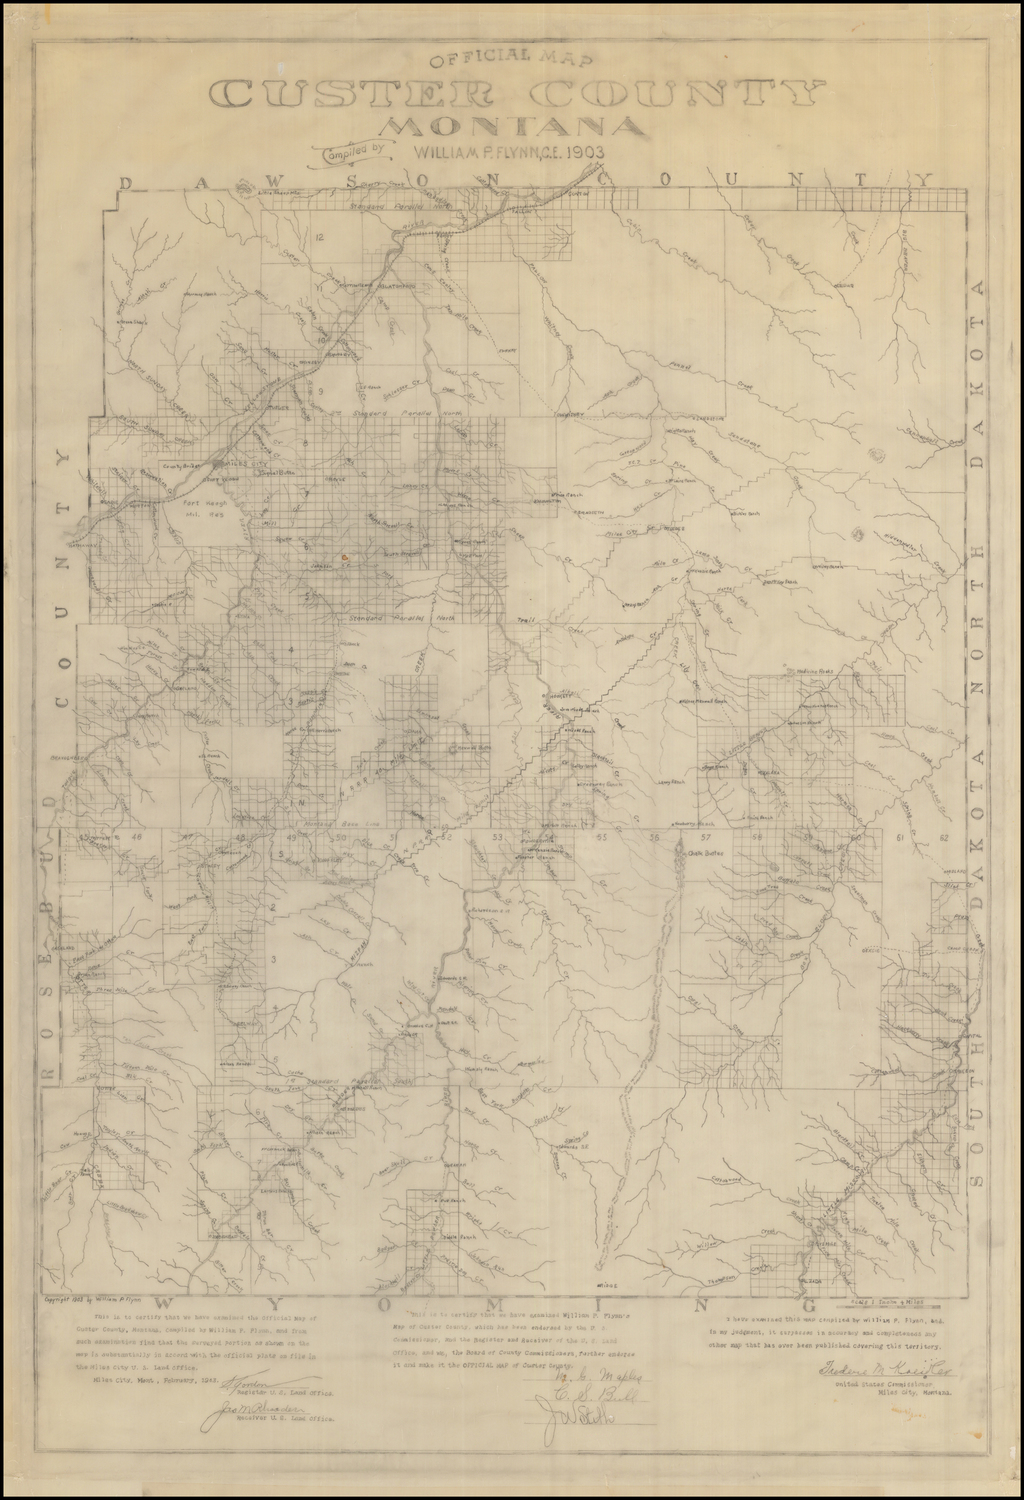 Official Map Custer County Montana Compiled by William P. Flynn, C.E. 1903 By William P. Flynn